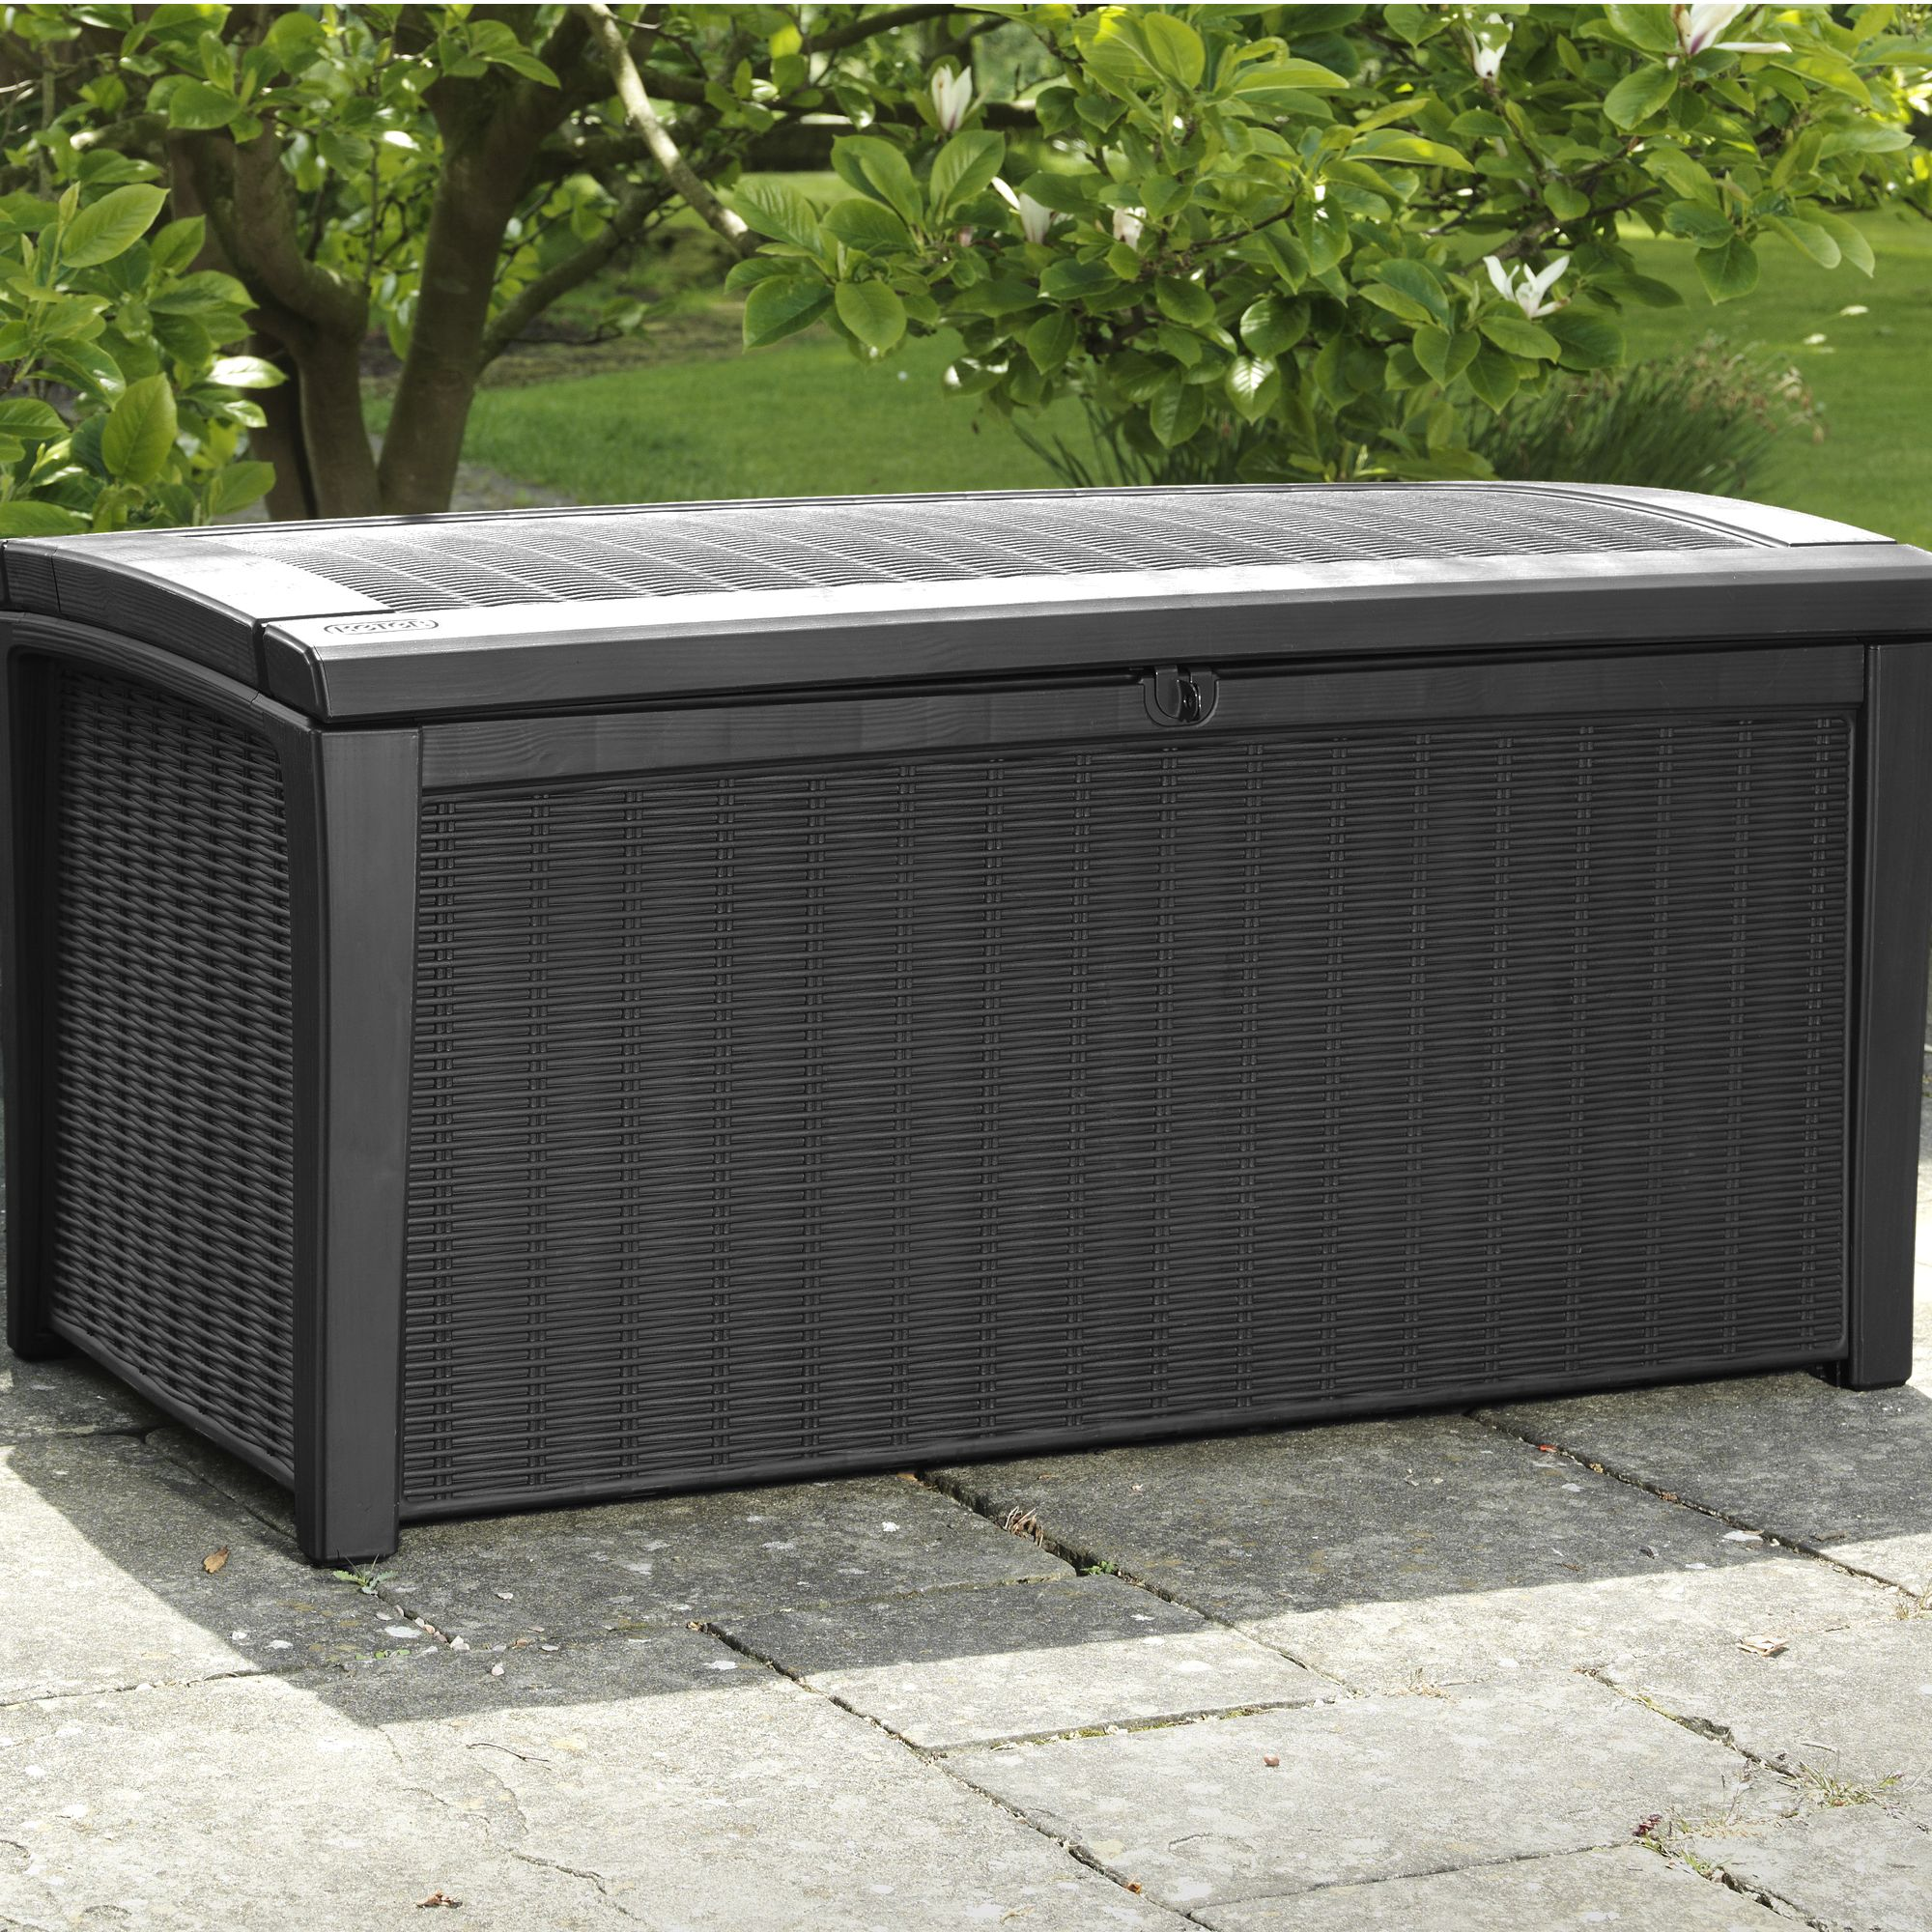 Borneo Rattan Effect Plastic Garden Storage Box   Departments   DIY at B Q. Borneo Rattan Effect Plastic Garden Storage Box   Departments